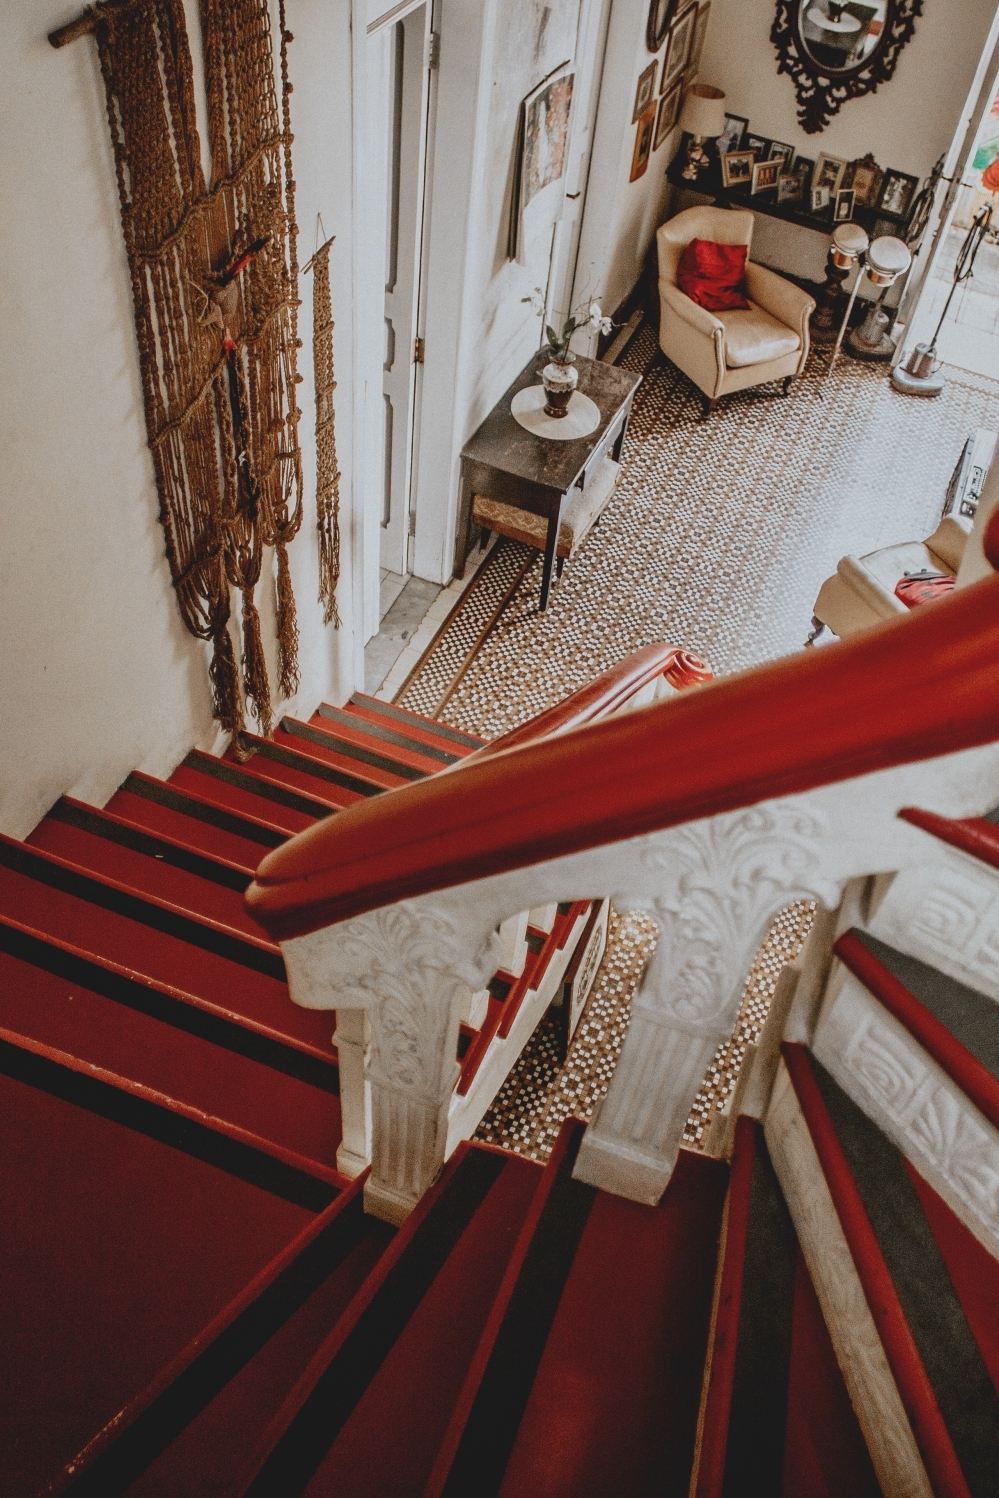 Red And White Wooden Stairs Photo – Free Banister Image On Unsplash   White And Wood Banister   Stairwell   Gray White   Contemporary   Classic Wood Stair   Colonial